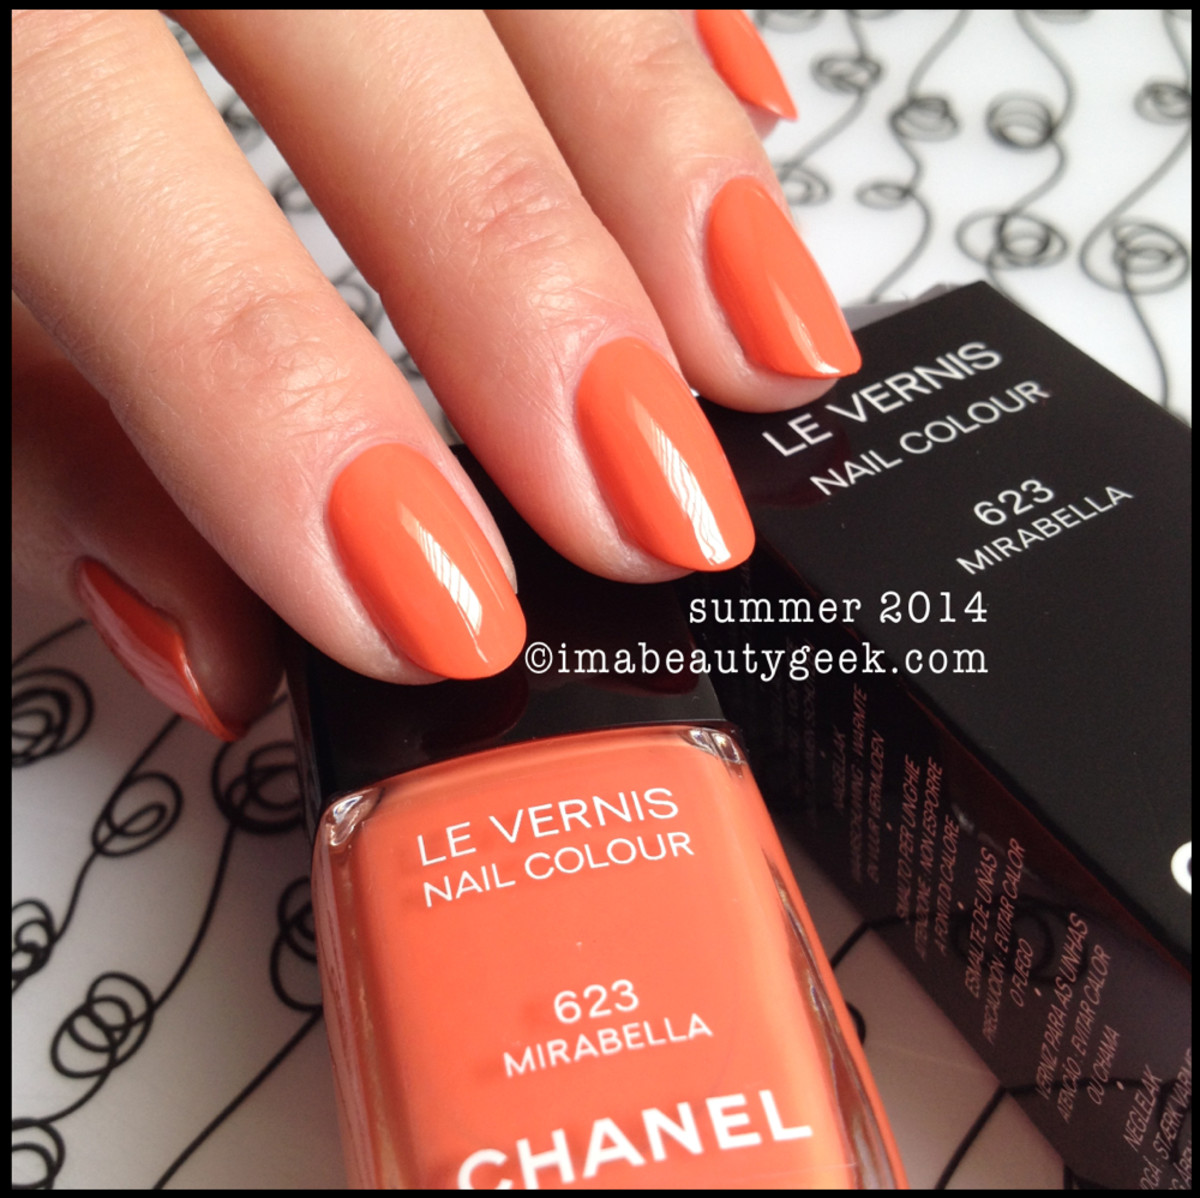 Chanel Mirabella 623 Summer 2014